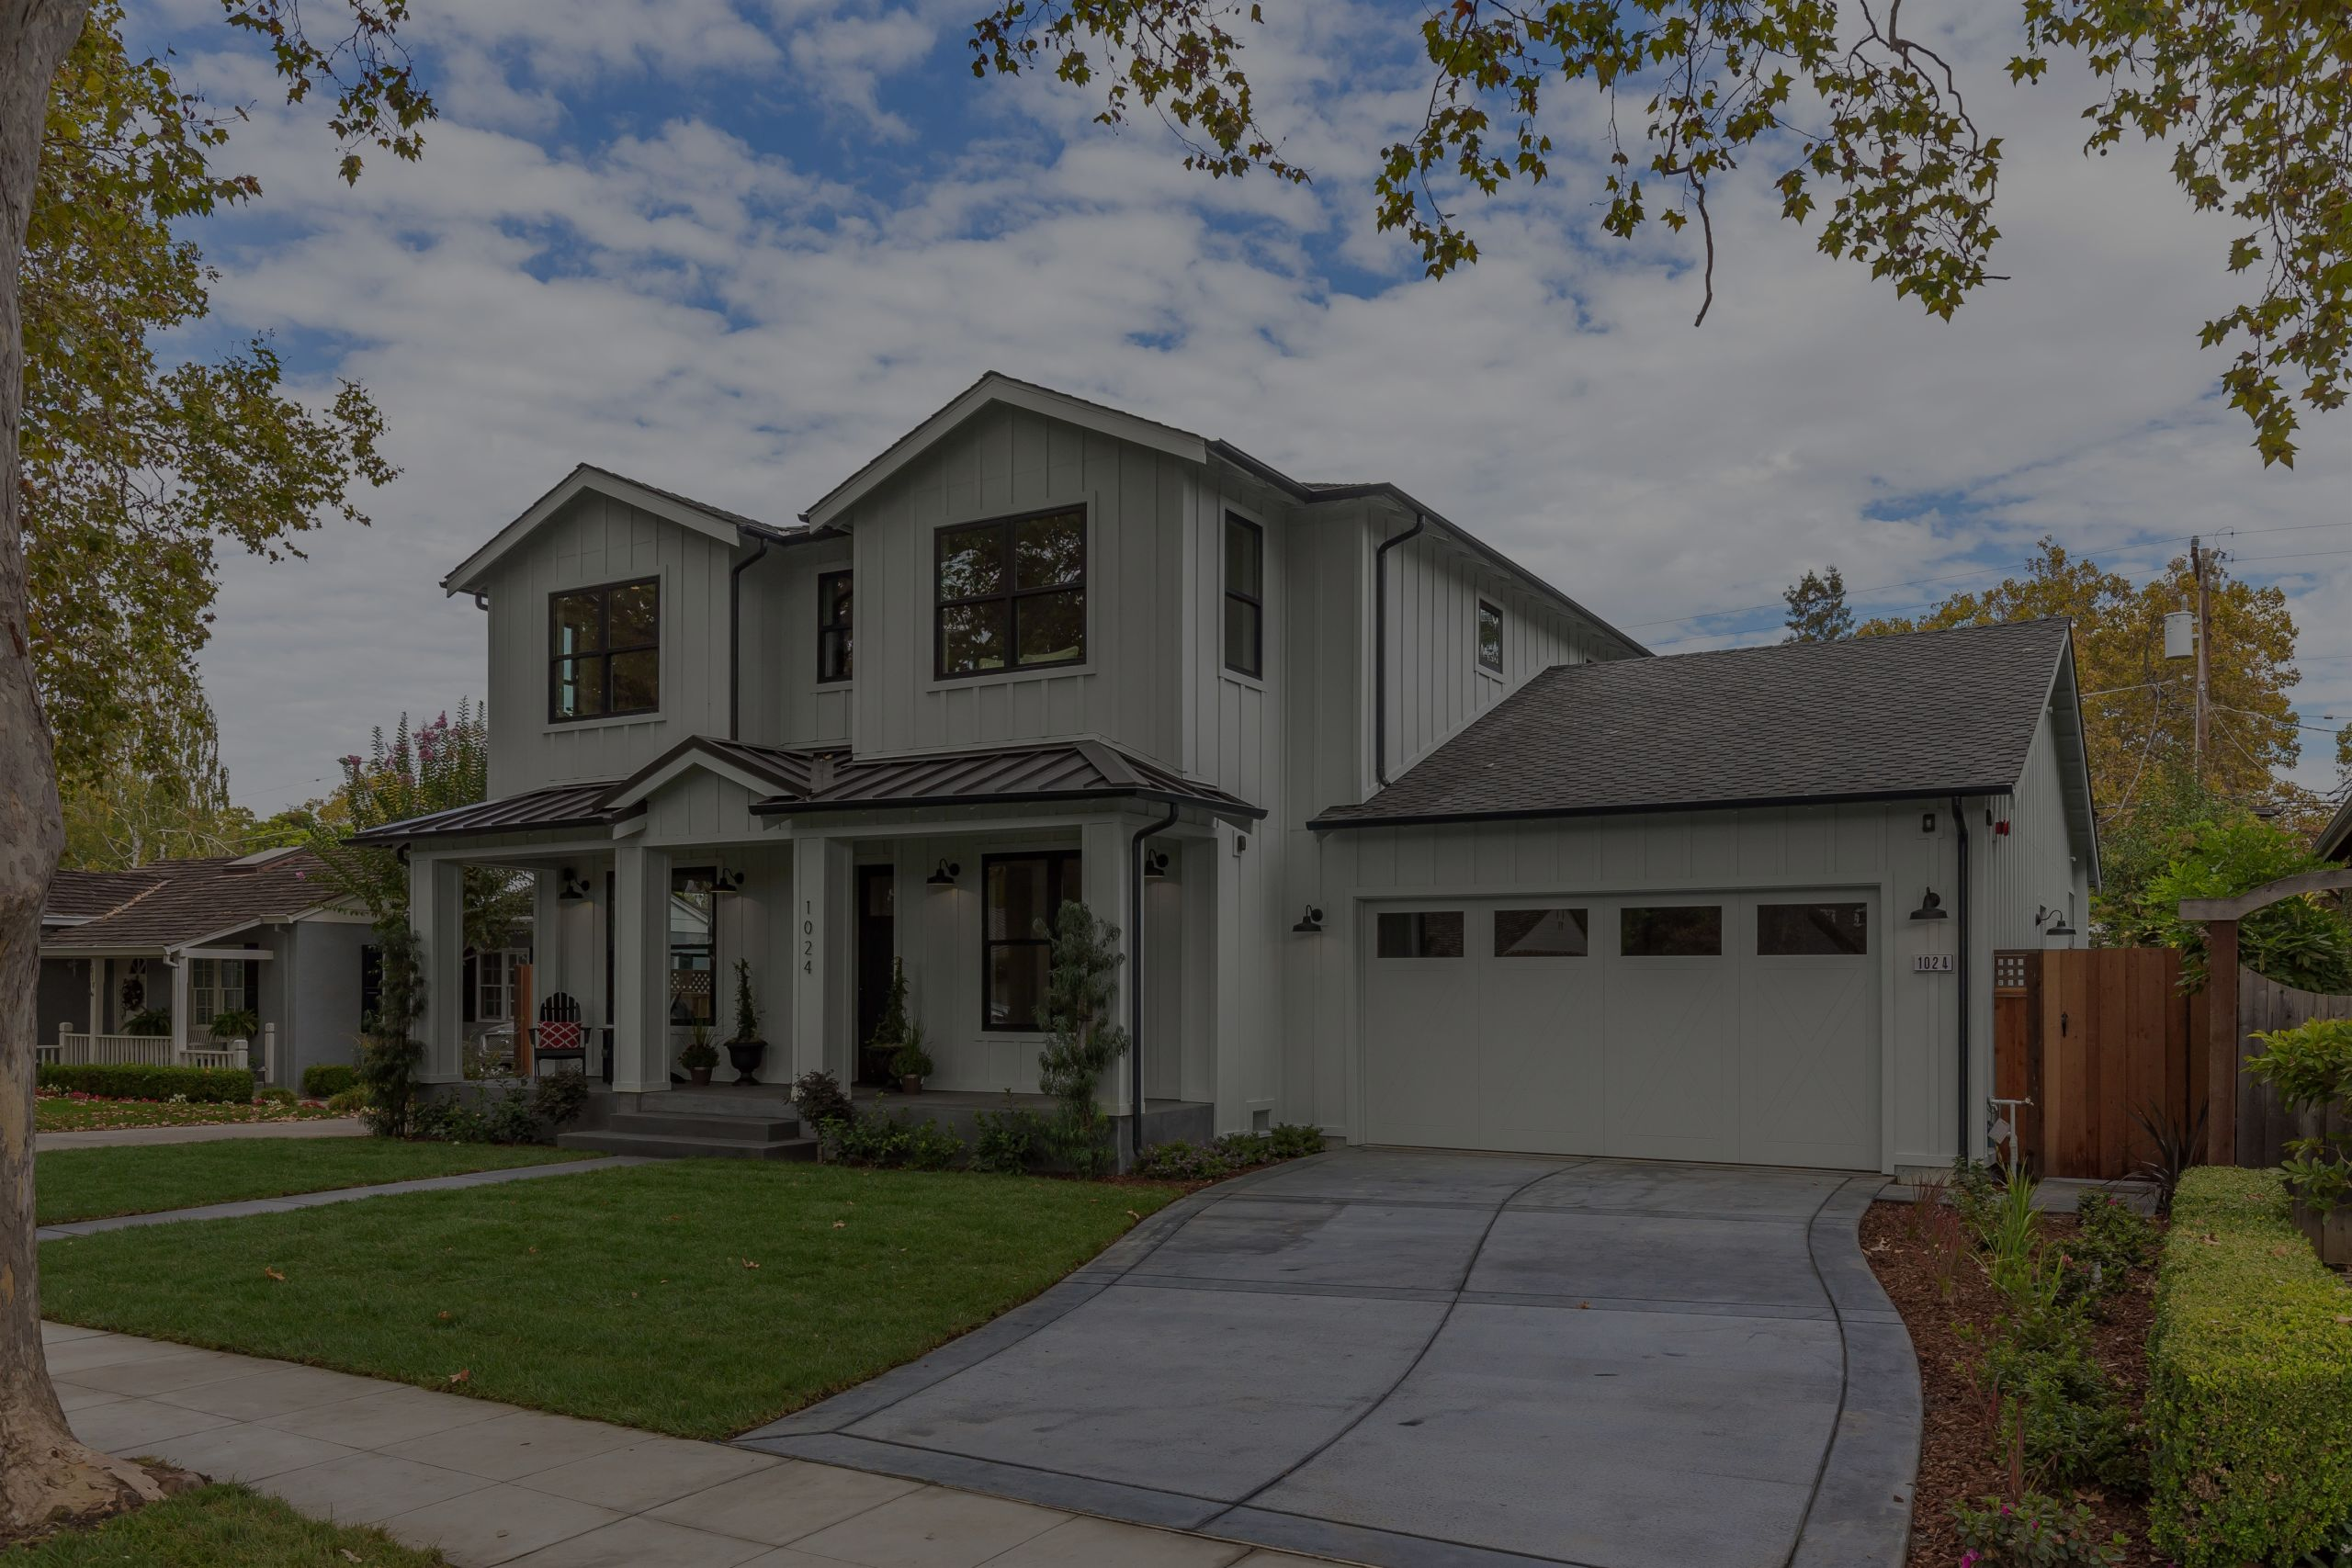 Sold for $2,635,000 | Camino Ramon, San Jose